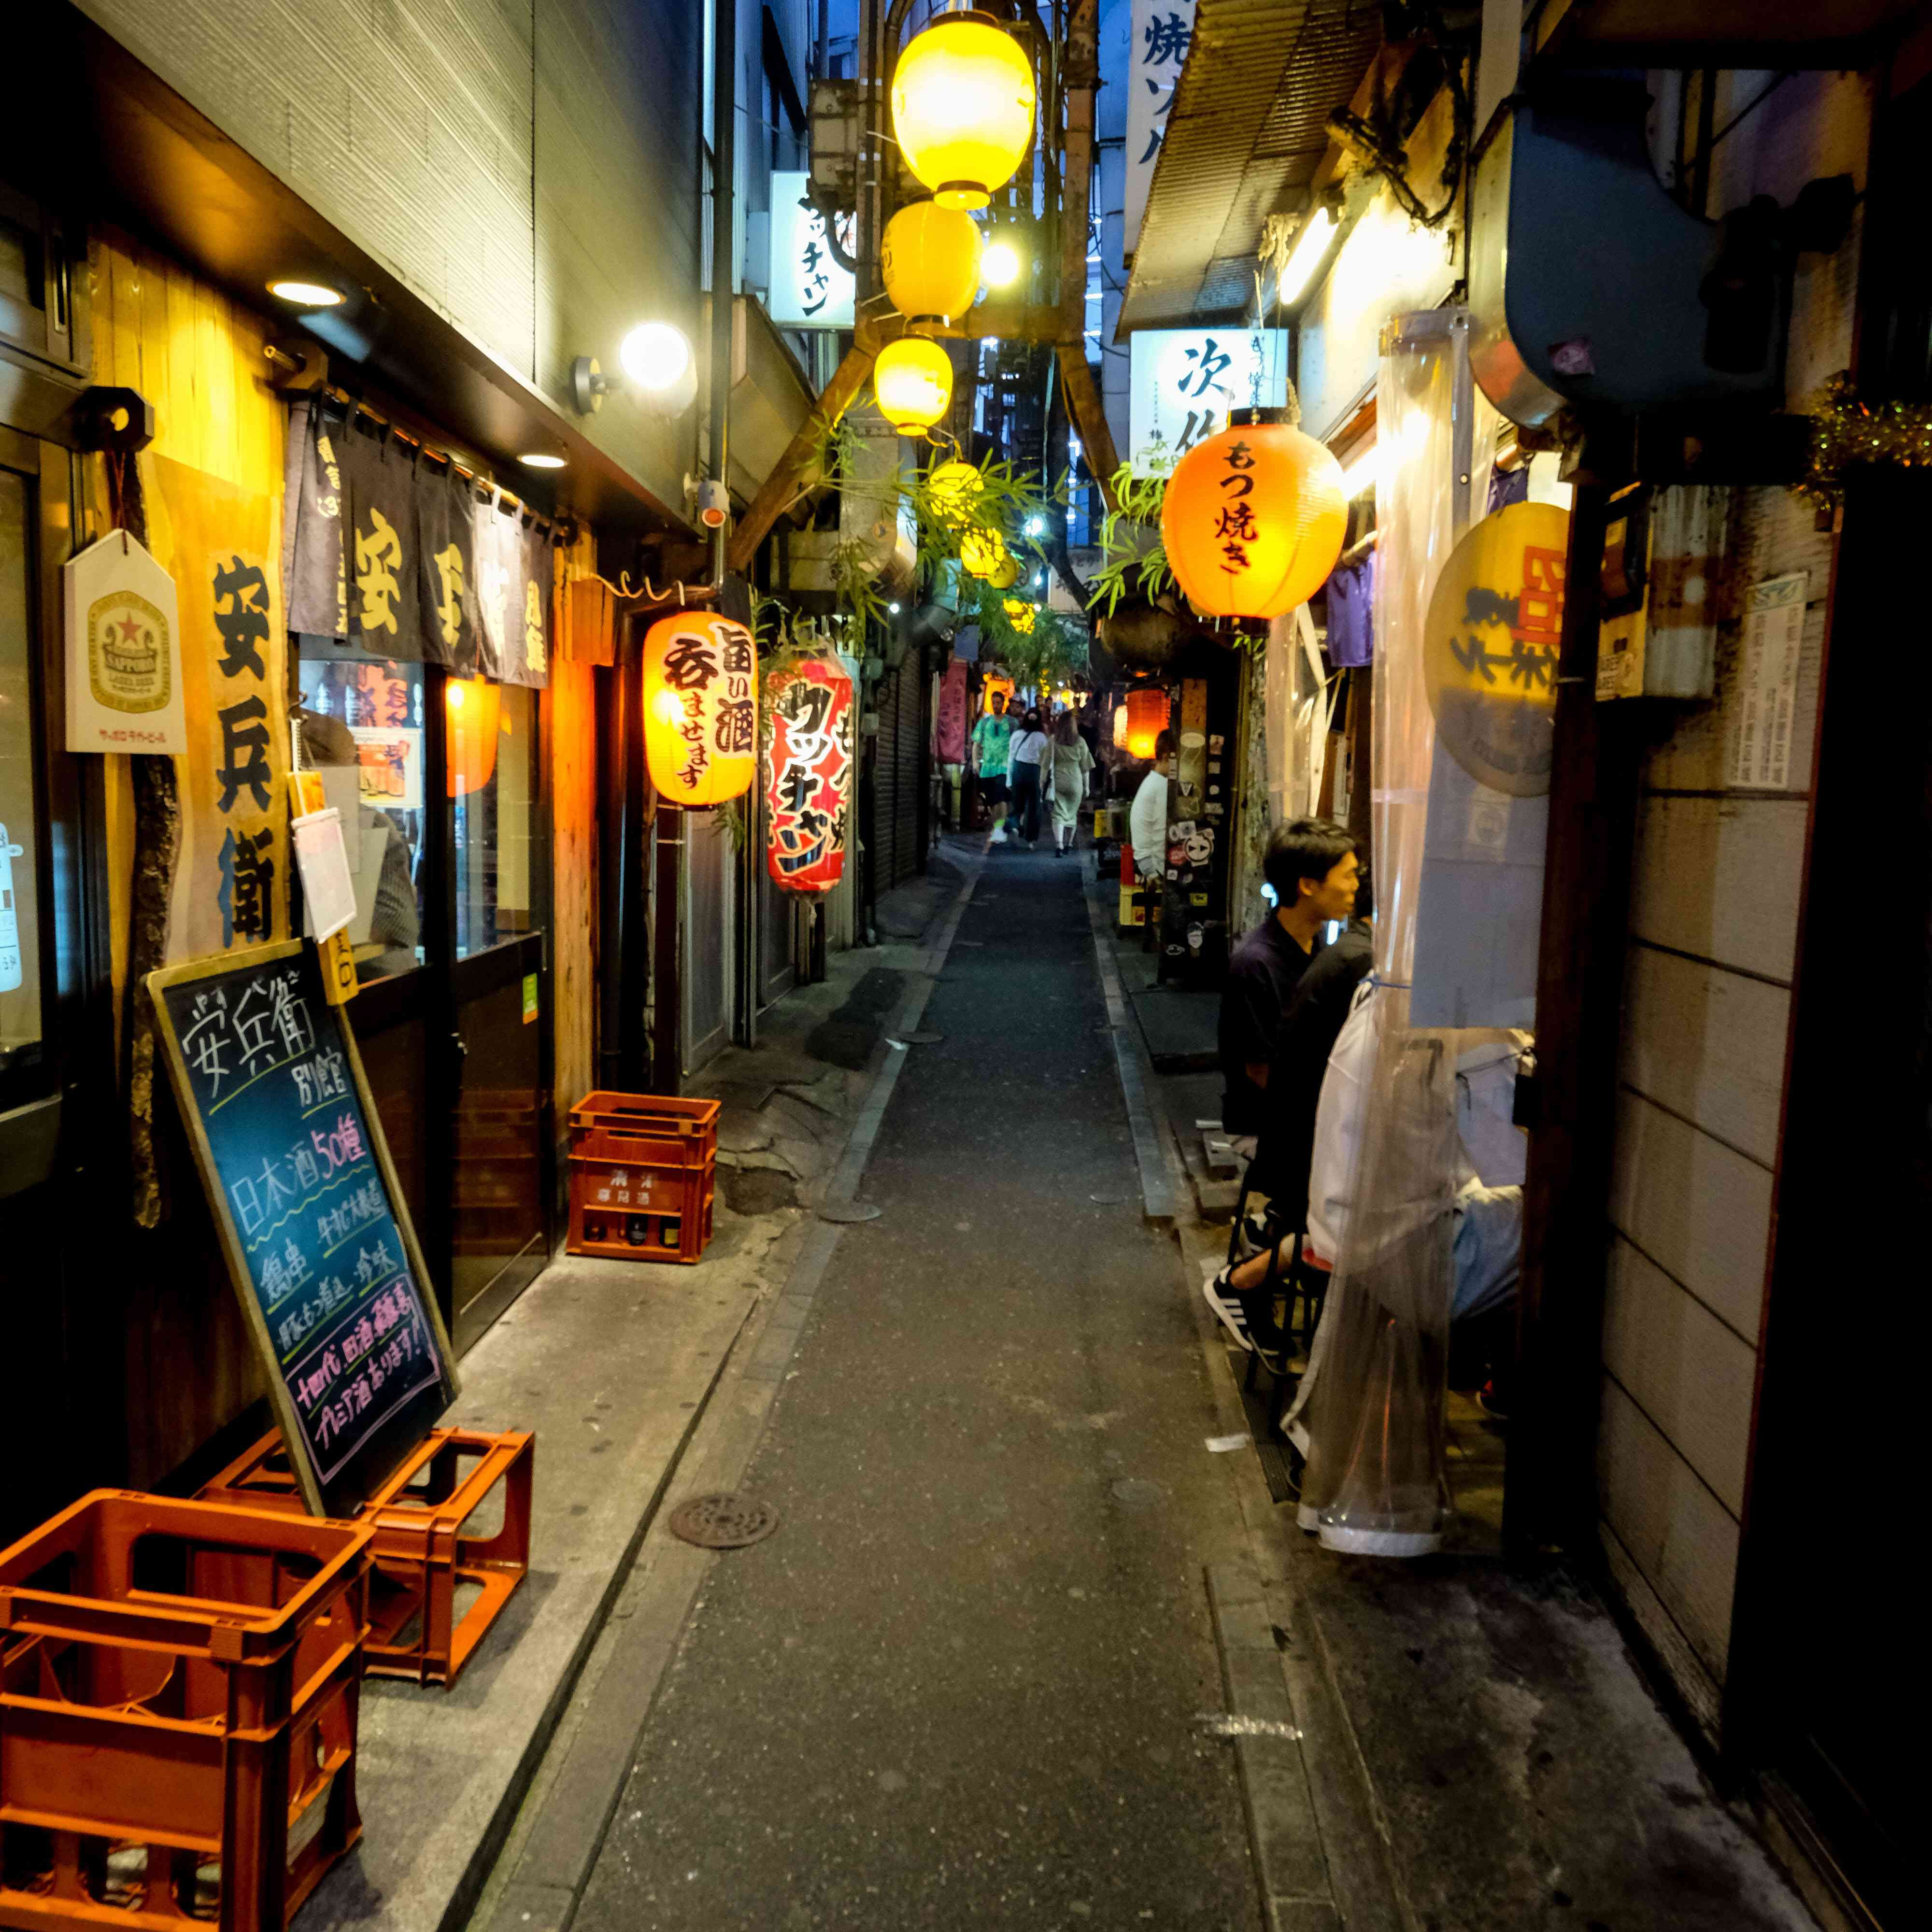 Alley way full of bars in Tokyo's Memory Lane district